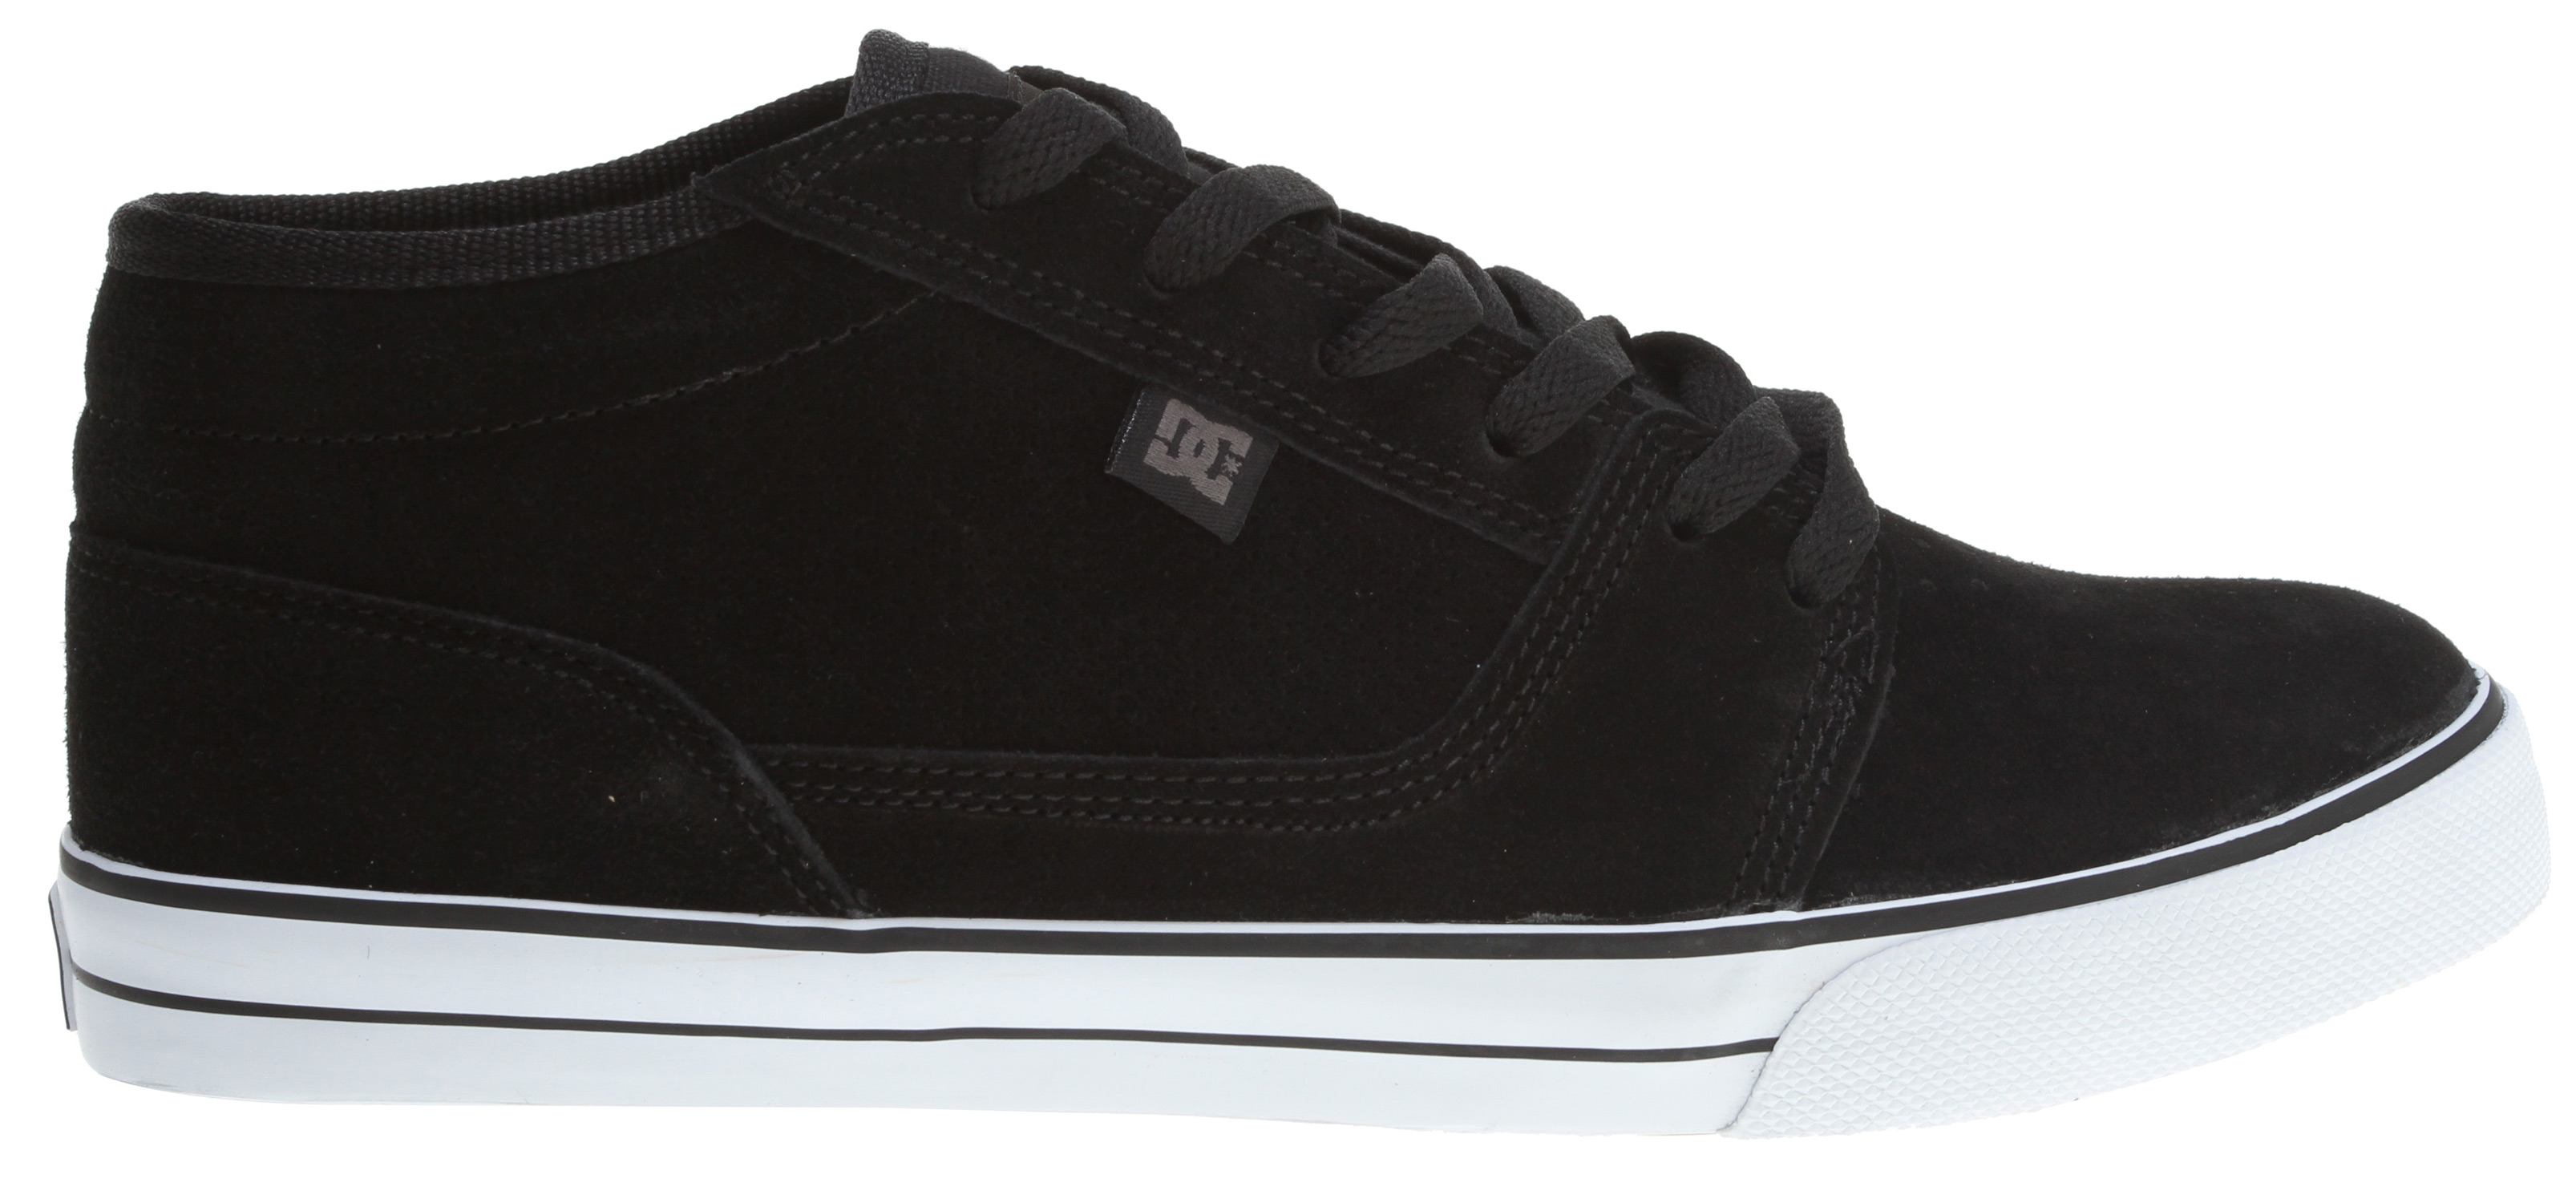 Skateboard If the Tonik's cool styling with a clean toe, and super lightweight feel with vulcanized construction isn't enough for your performance demanding ankles, we make the Tonik Mids. A little more ankle, a little more awesome. - $29.95